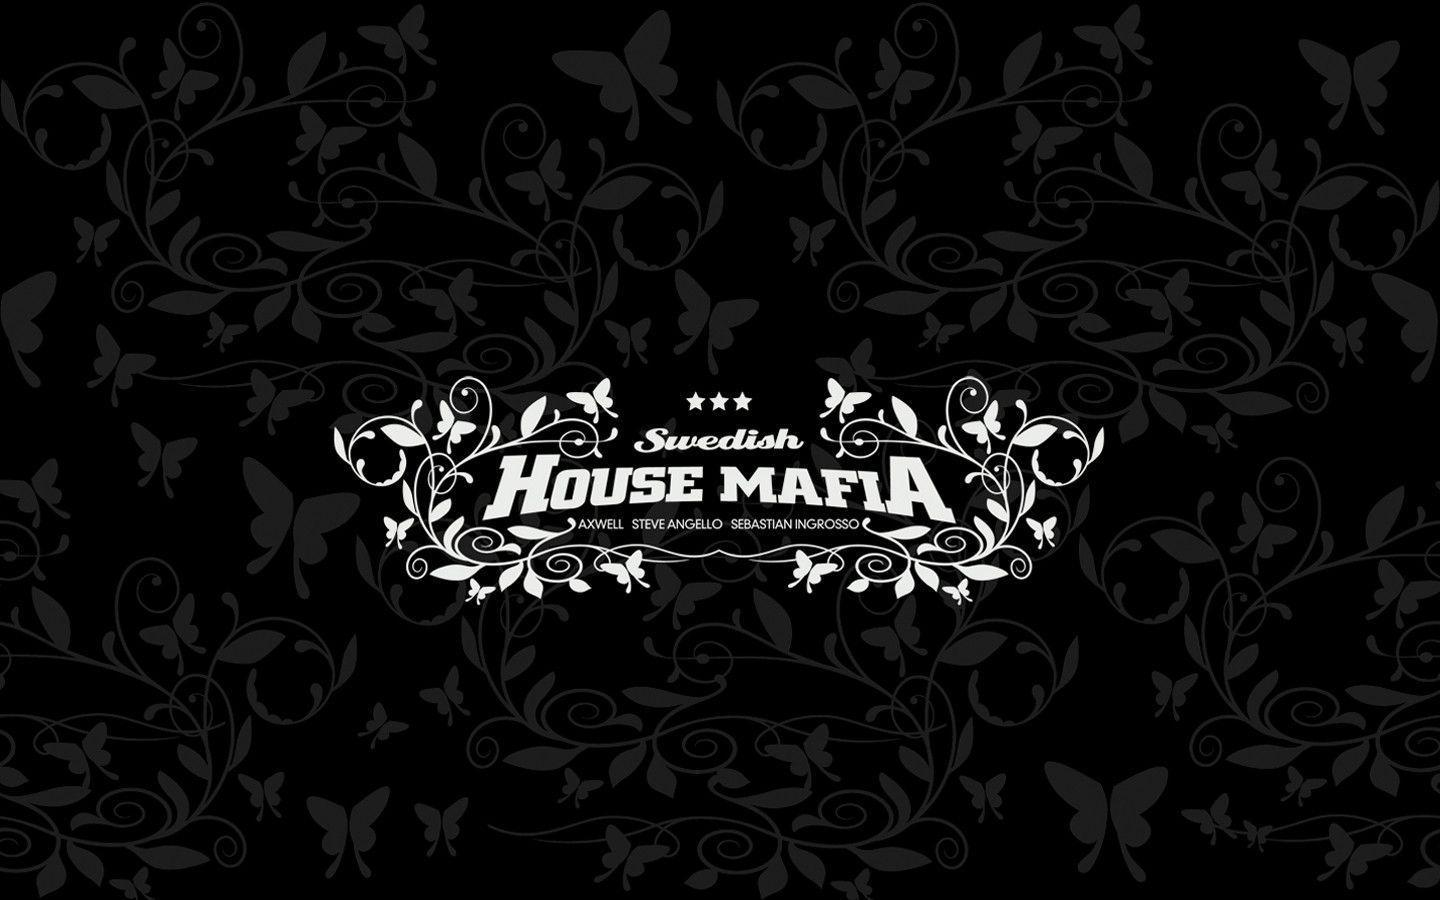 Swedish House Mafia | Best Music Wallpapers